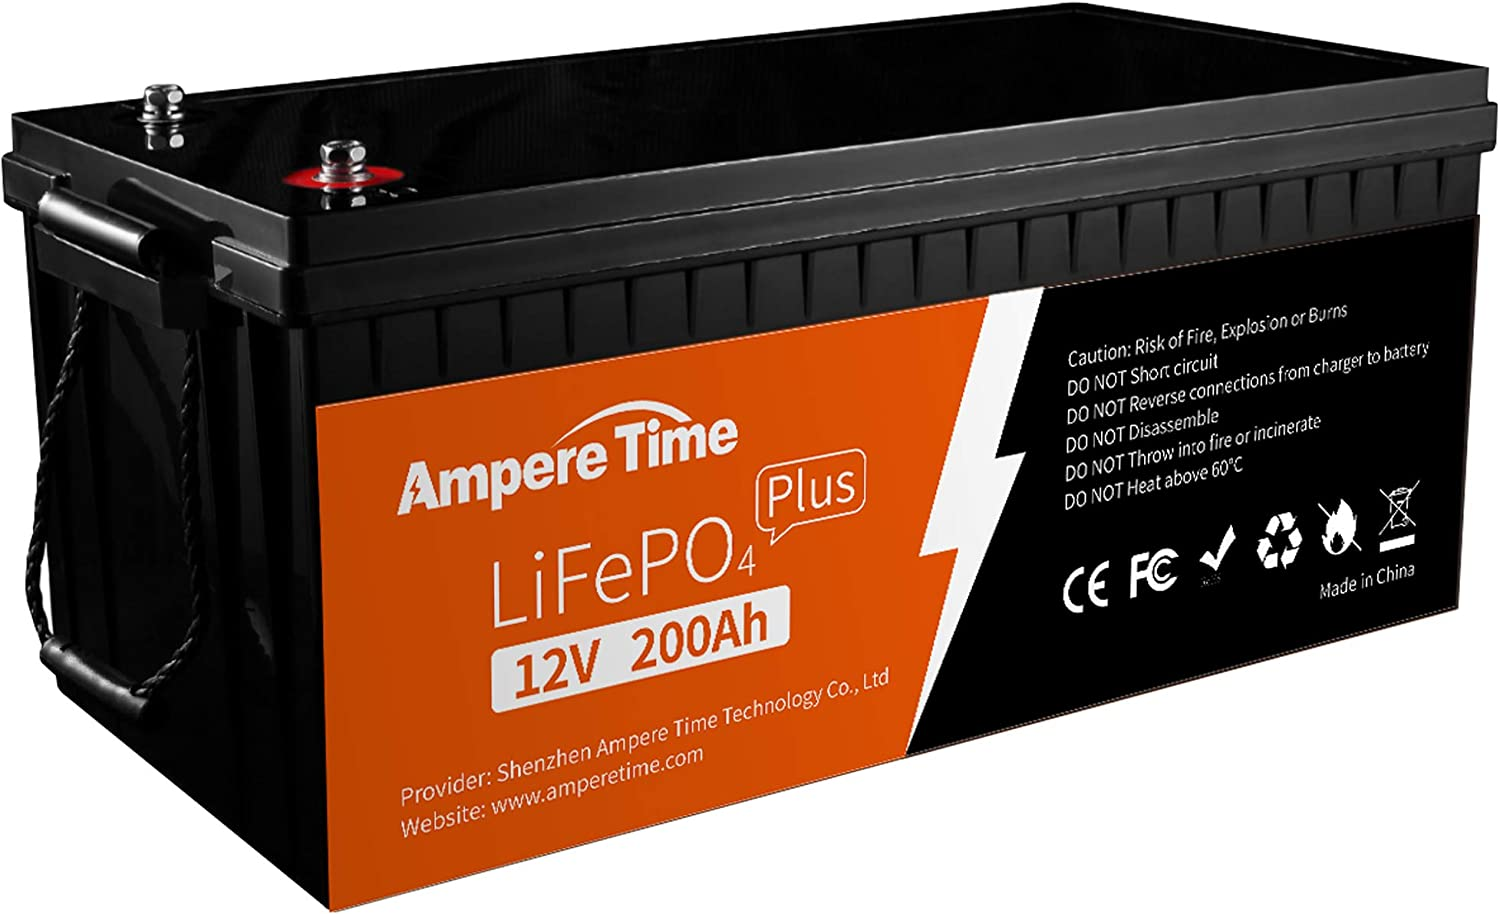 Ampere Time 12V 200Ah 2560W Power  Lithium LiFePO4  Deep Cycle Rechargeable Battery, Built-in 200A BMS,400A Max, 4000~8000 Cycles, Perfect for Solar Home, RV/Camping, Off-Grid Applications